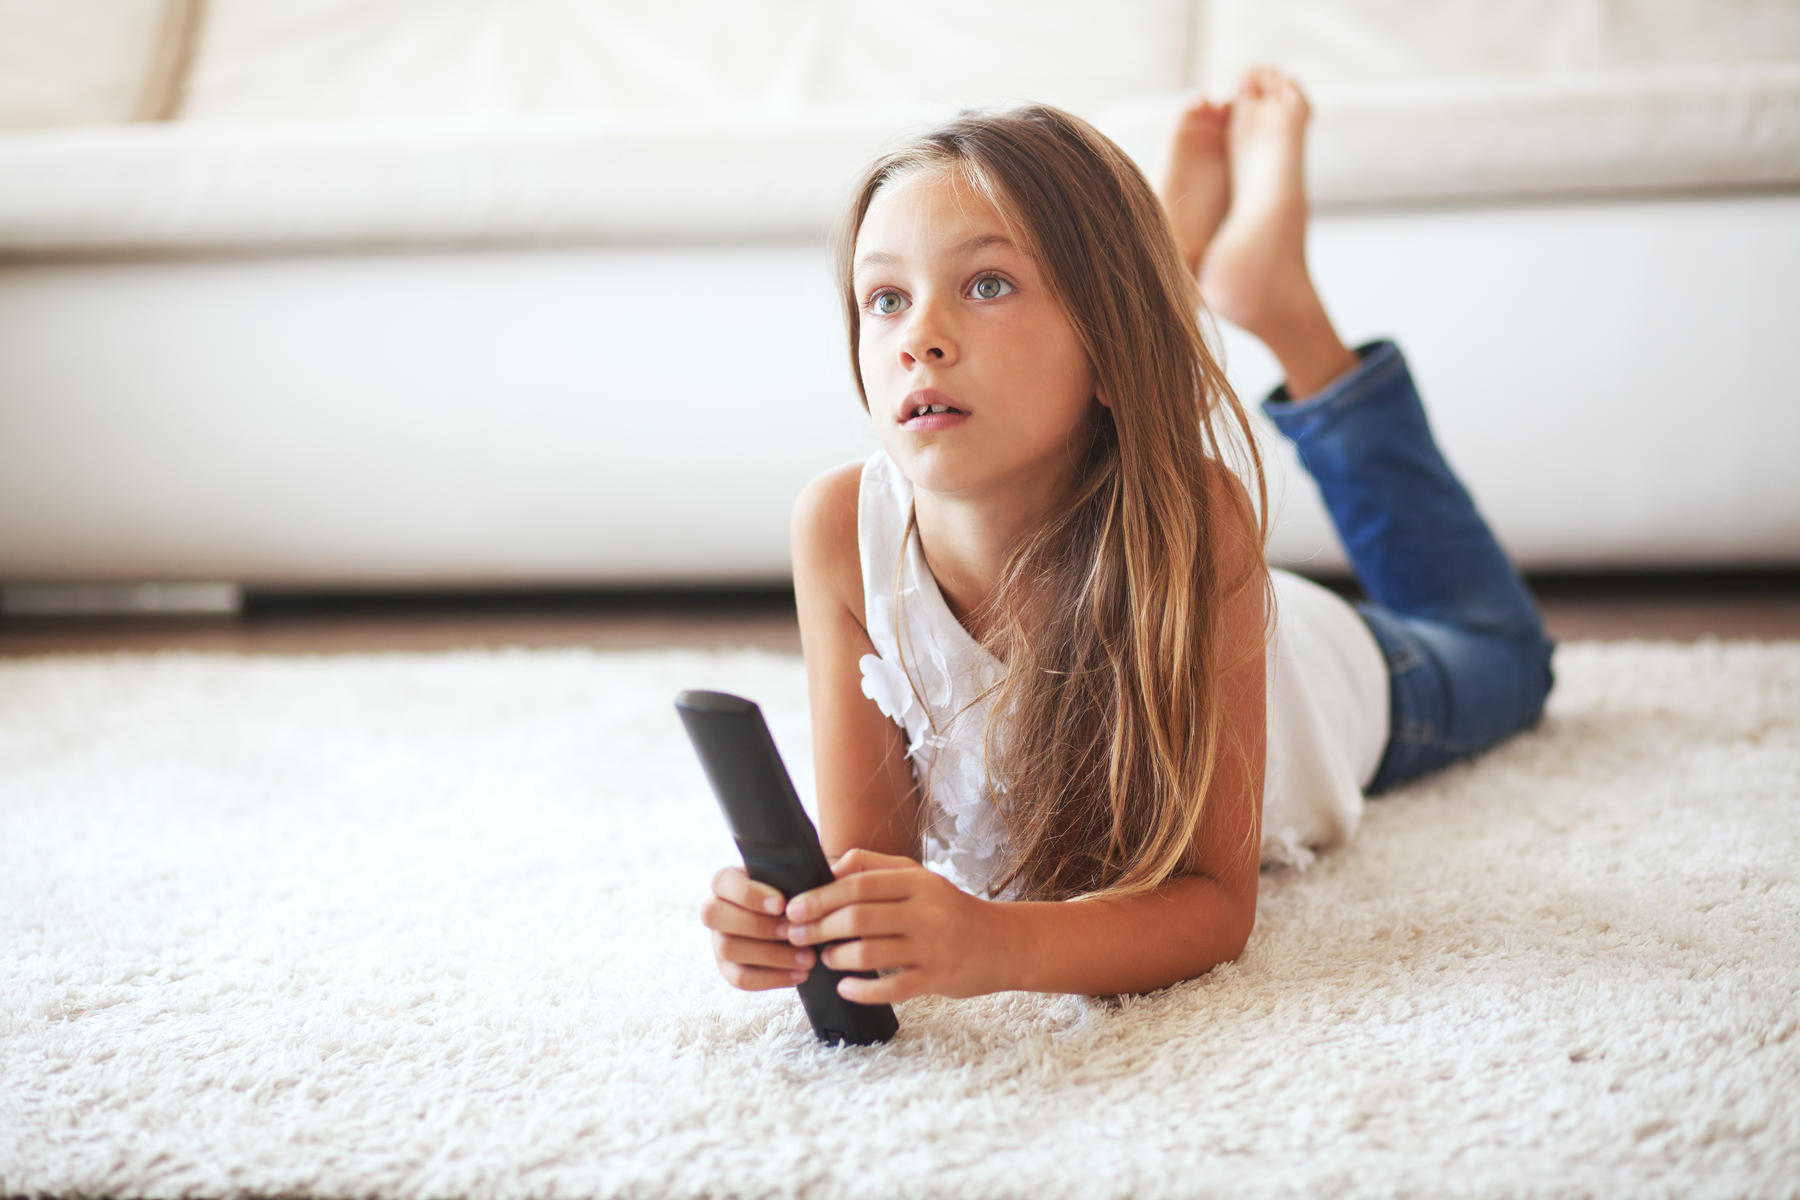 Young girl on the floor watching TV